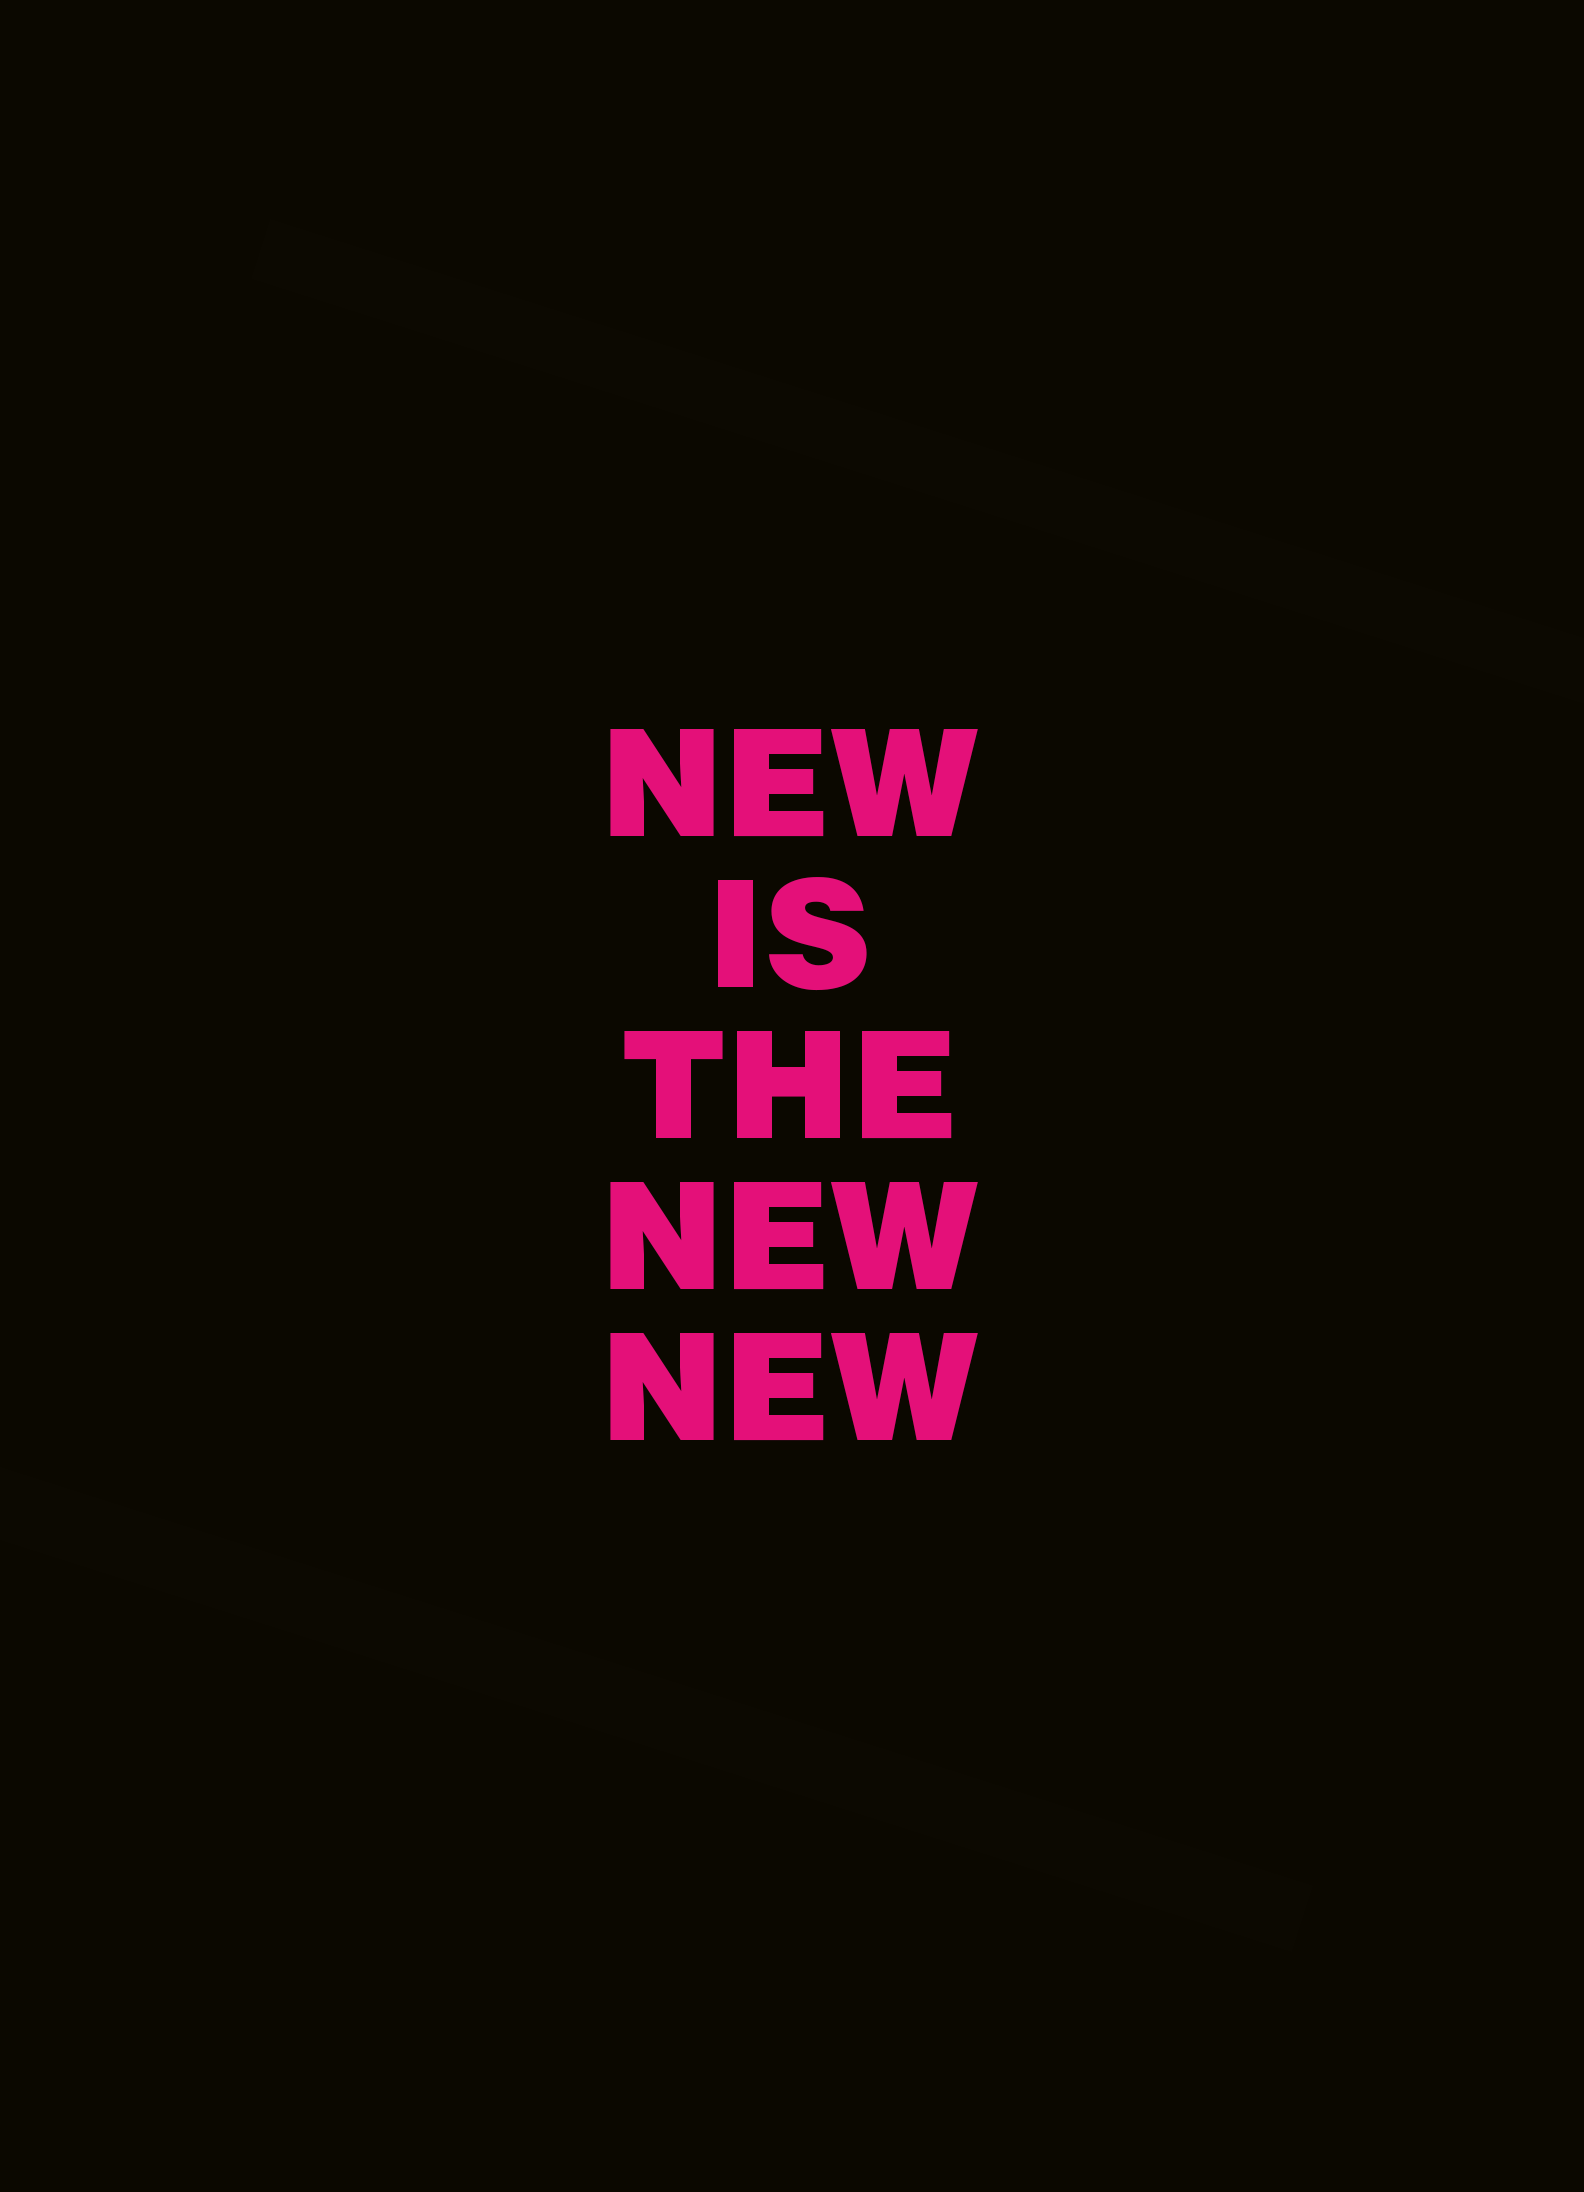 New is the new new.